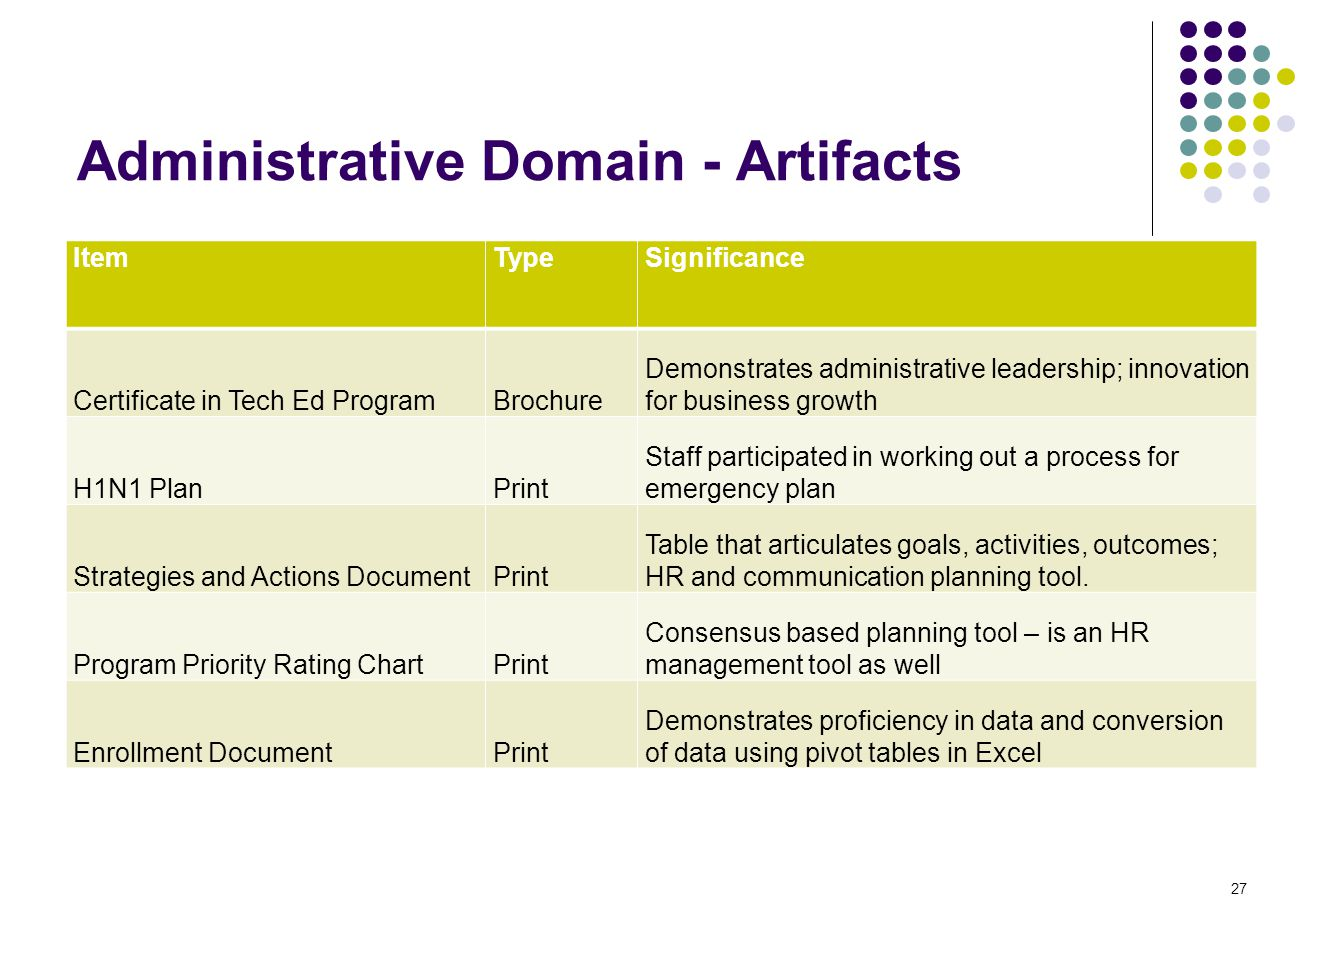 Administrative Domain - Artifacts 27 ItemTypeSignificance Certificate in Tech Ed ProgramBrochure Demonstrates administrative leadership; innovation for business growth H1N1 PlanPrint Staff participated in working out a process for emergency plan Strategies and Actions DocumentPrint Table that articulates goals, activities, outcomes; HR and communication planning tool.